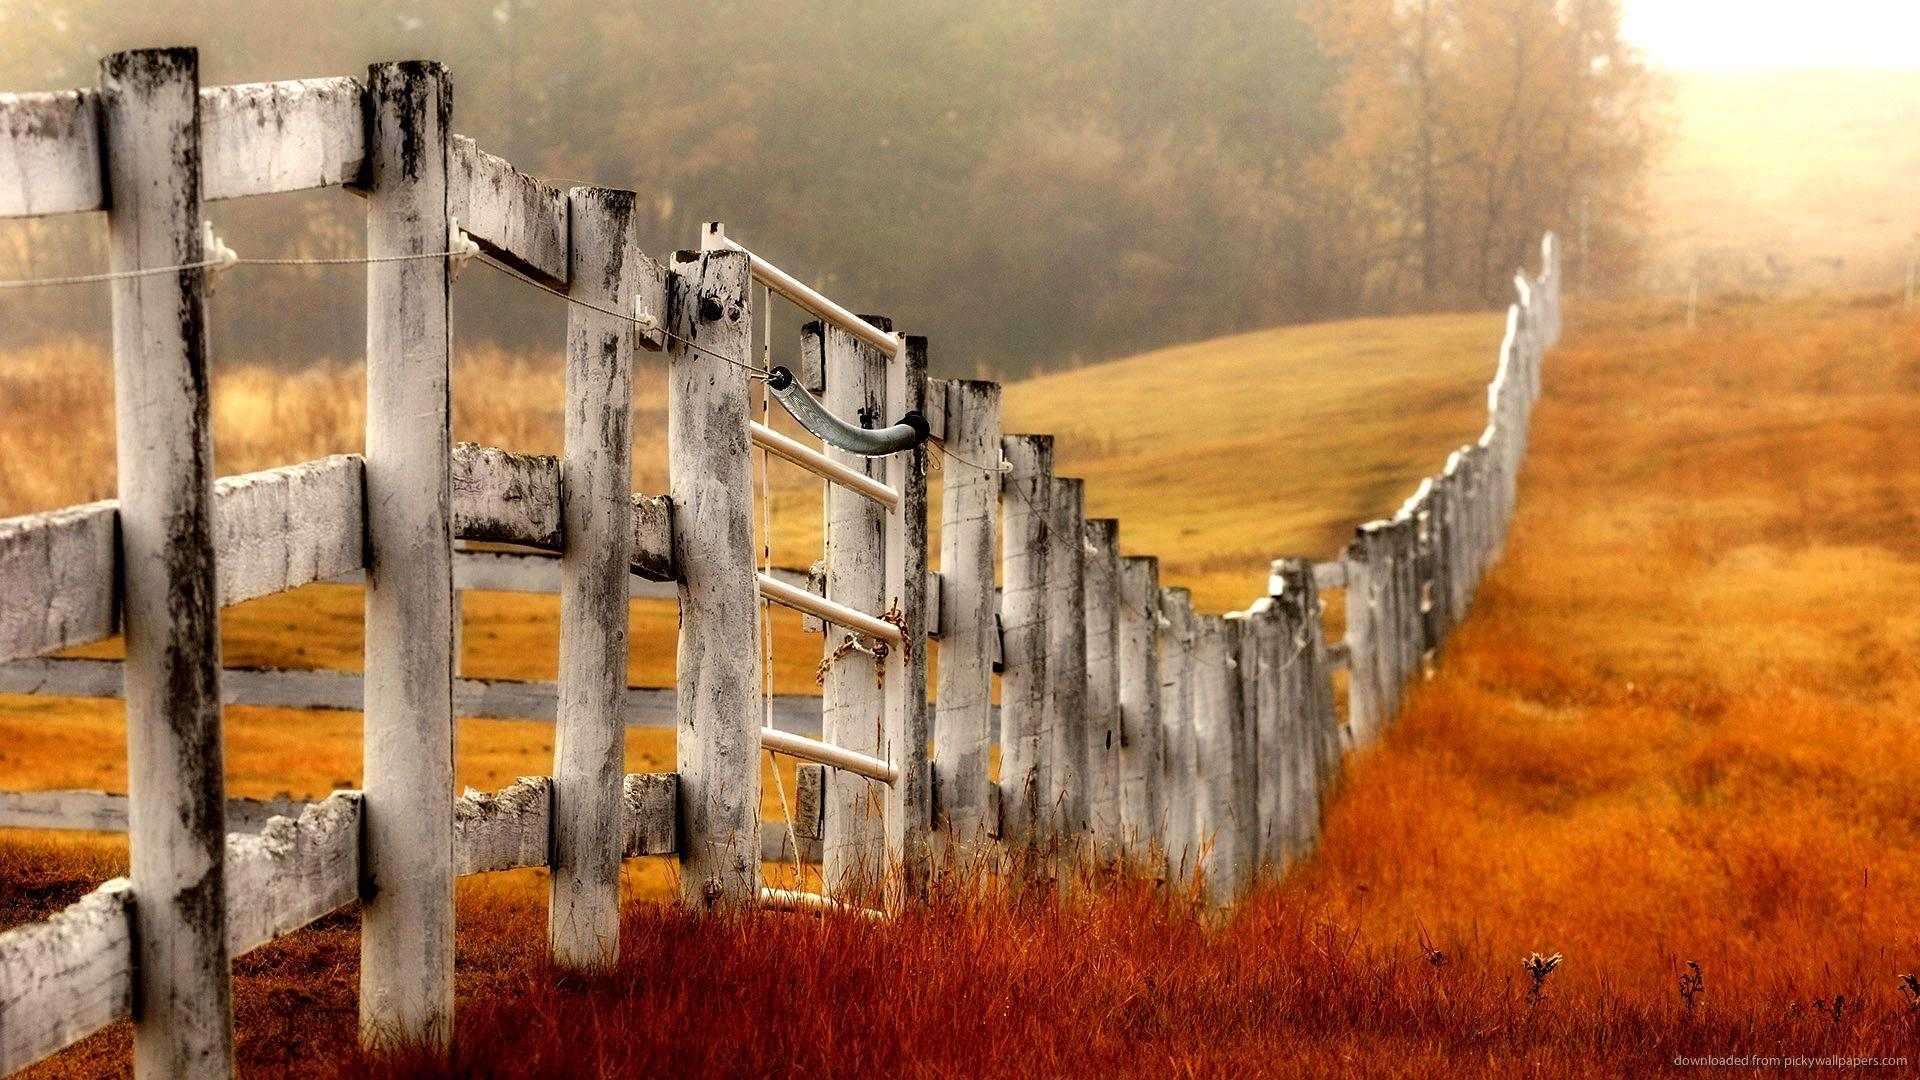 iPad Country Farm Fence Wallpaper Screensaver For Kindle3 And DX 1920x1080